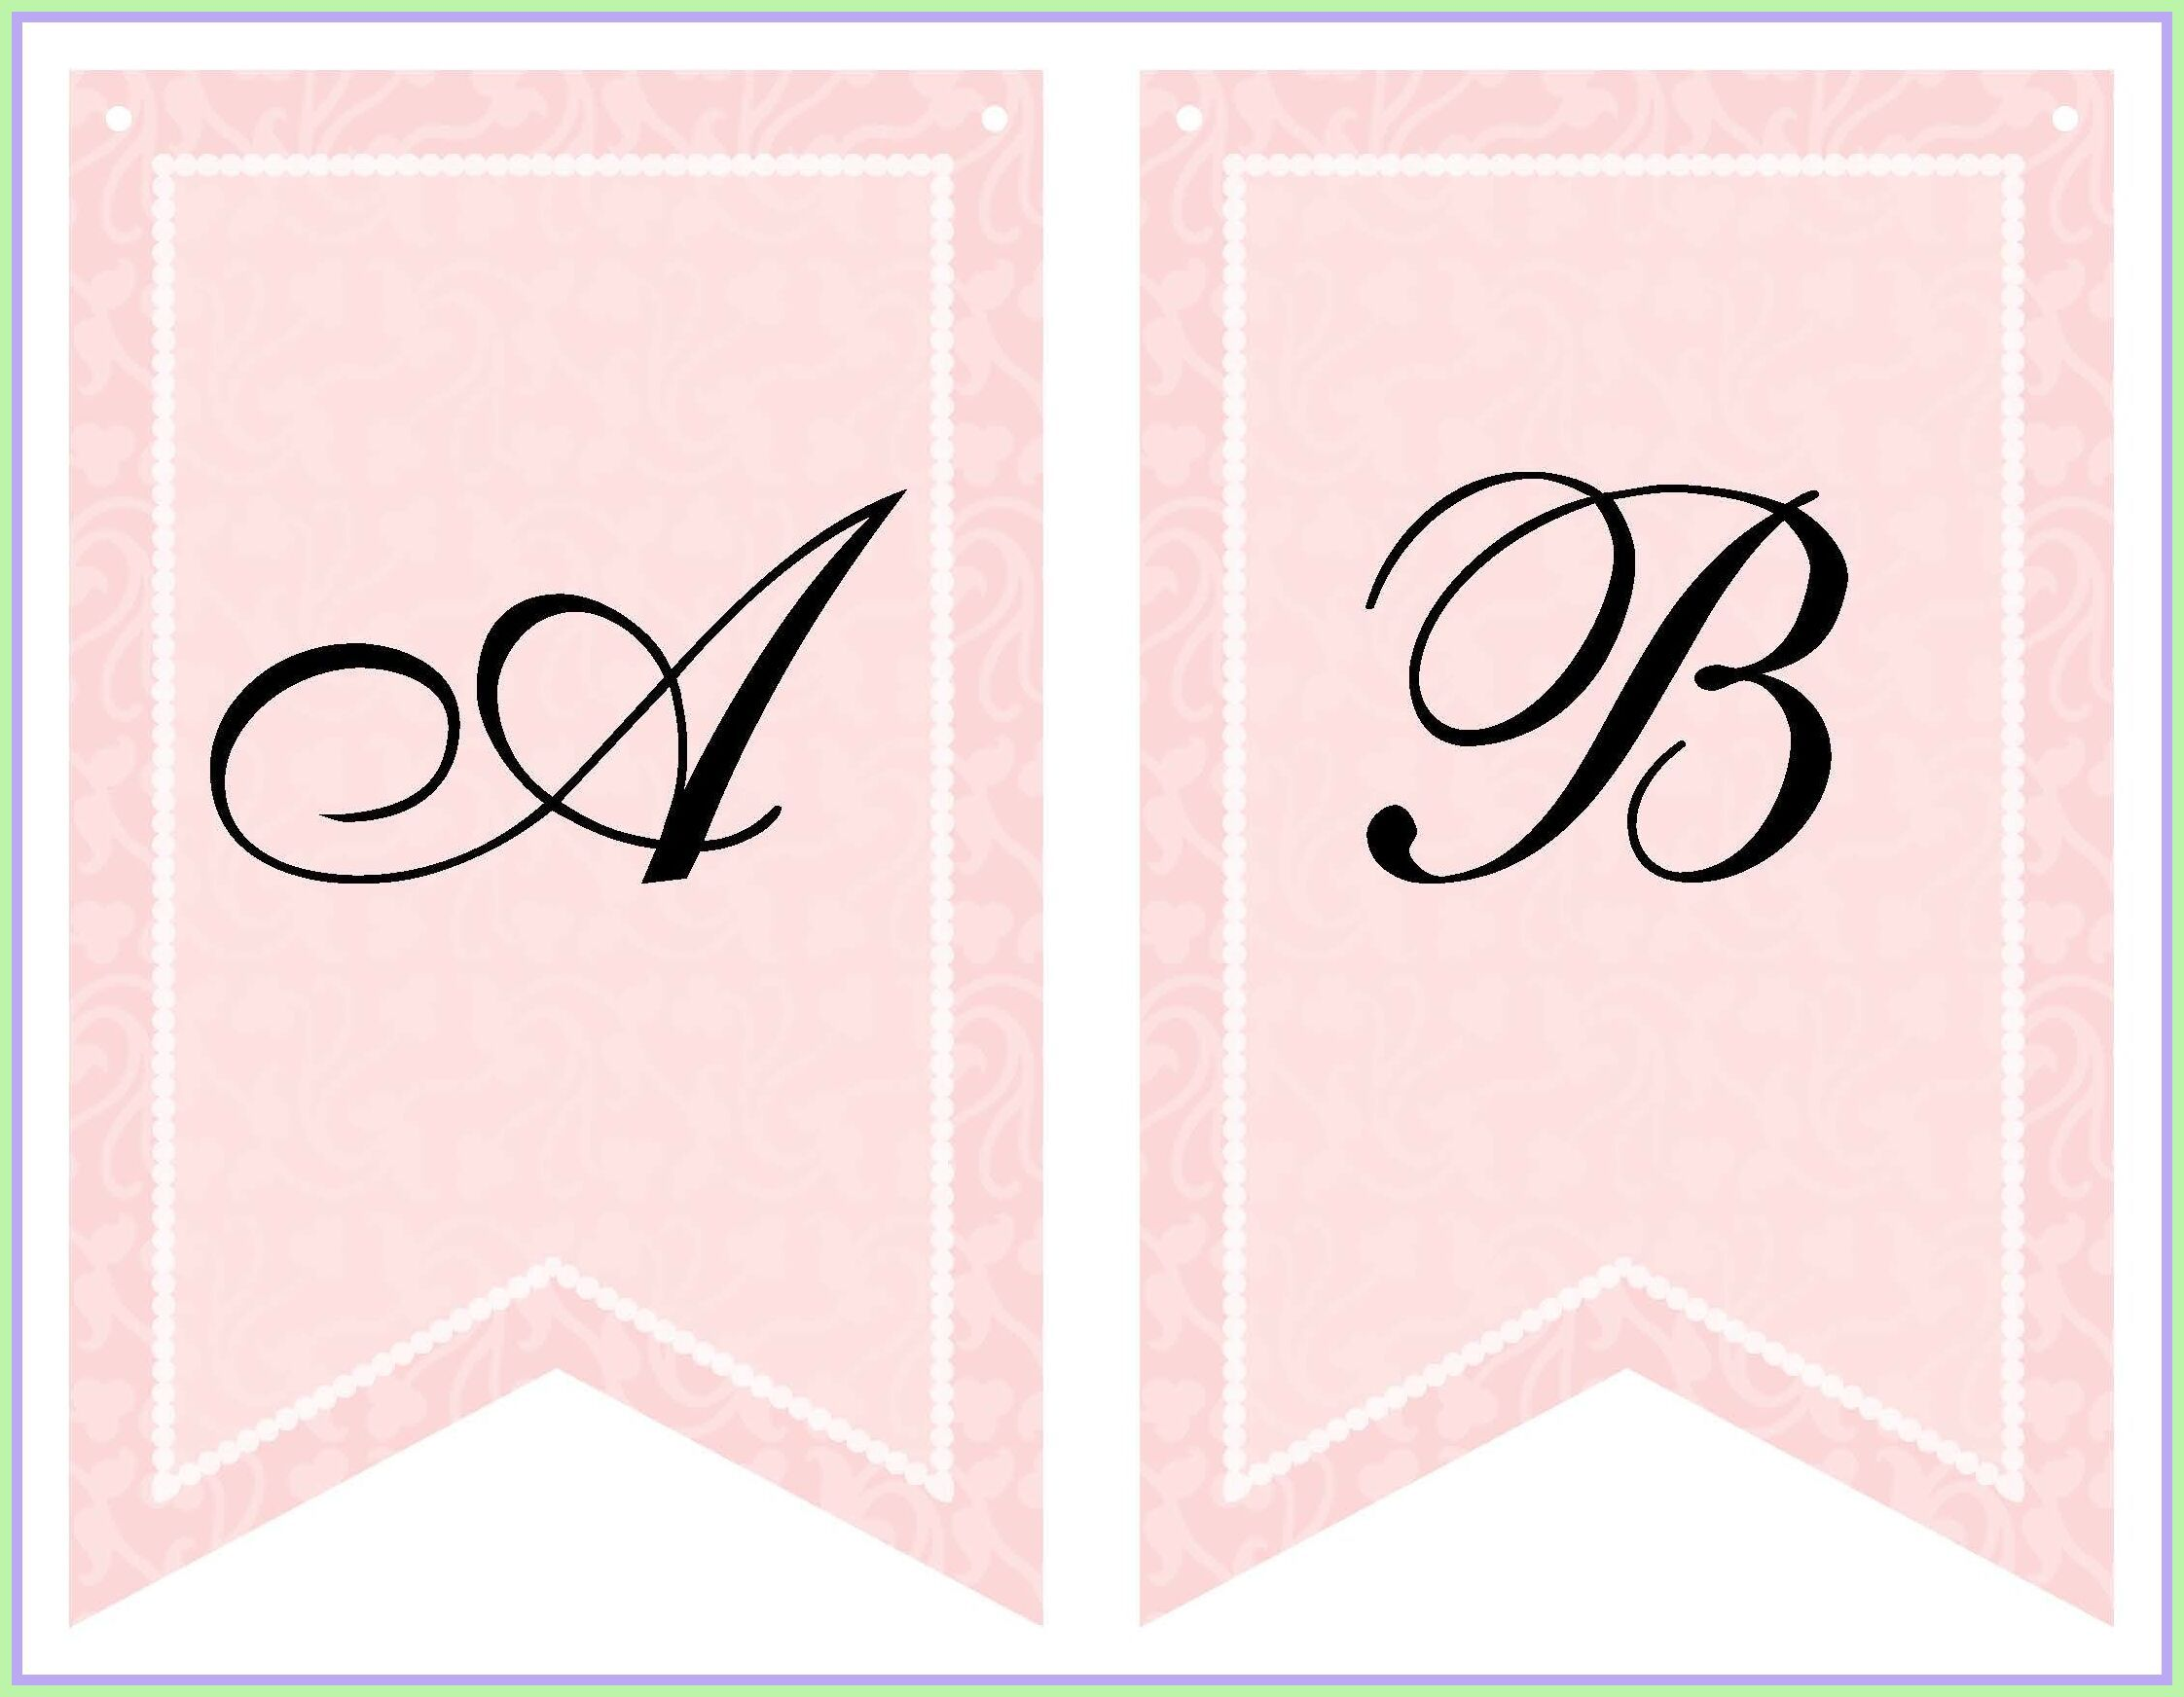 51 Reference Of Diy Baby Shower Banner Printable In 2020 Baby Shower Banner Girl Printable Baby Shower Banner Girl Printable Banner Template